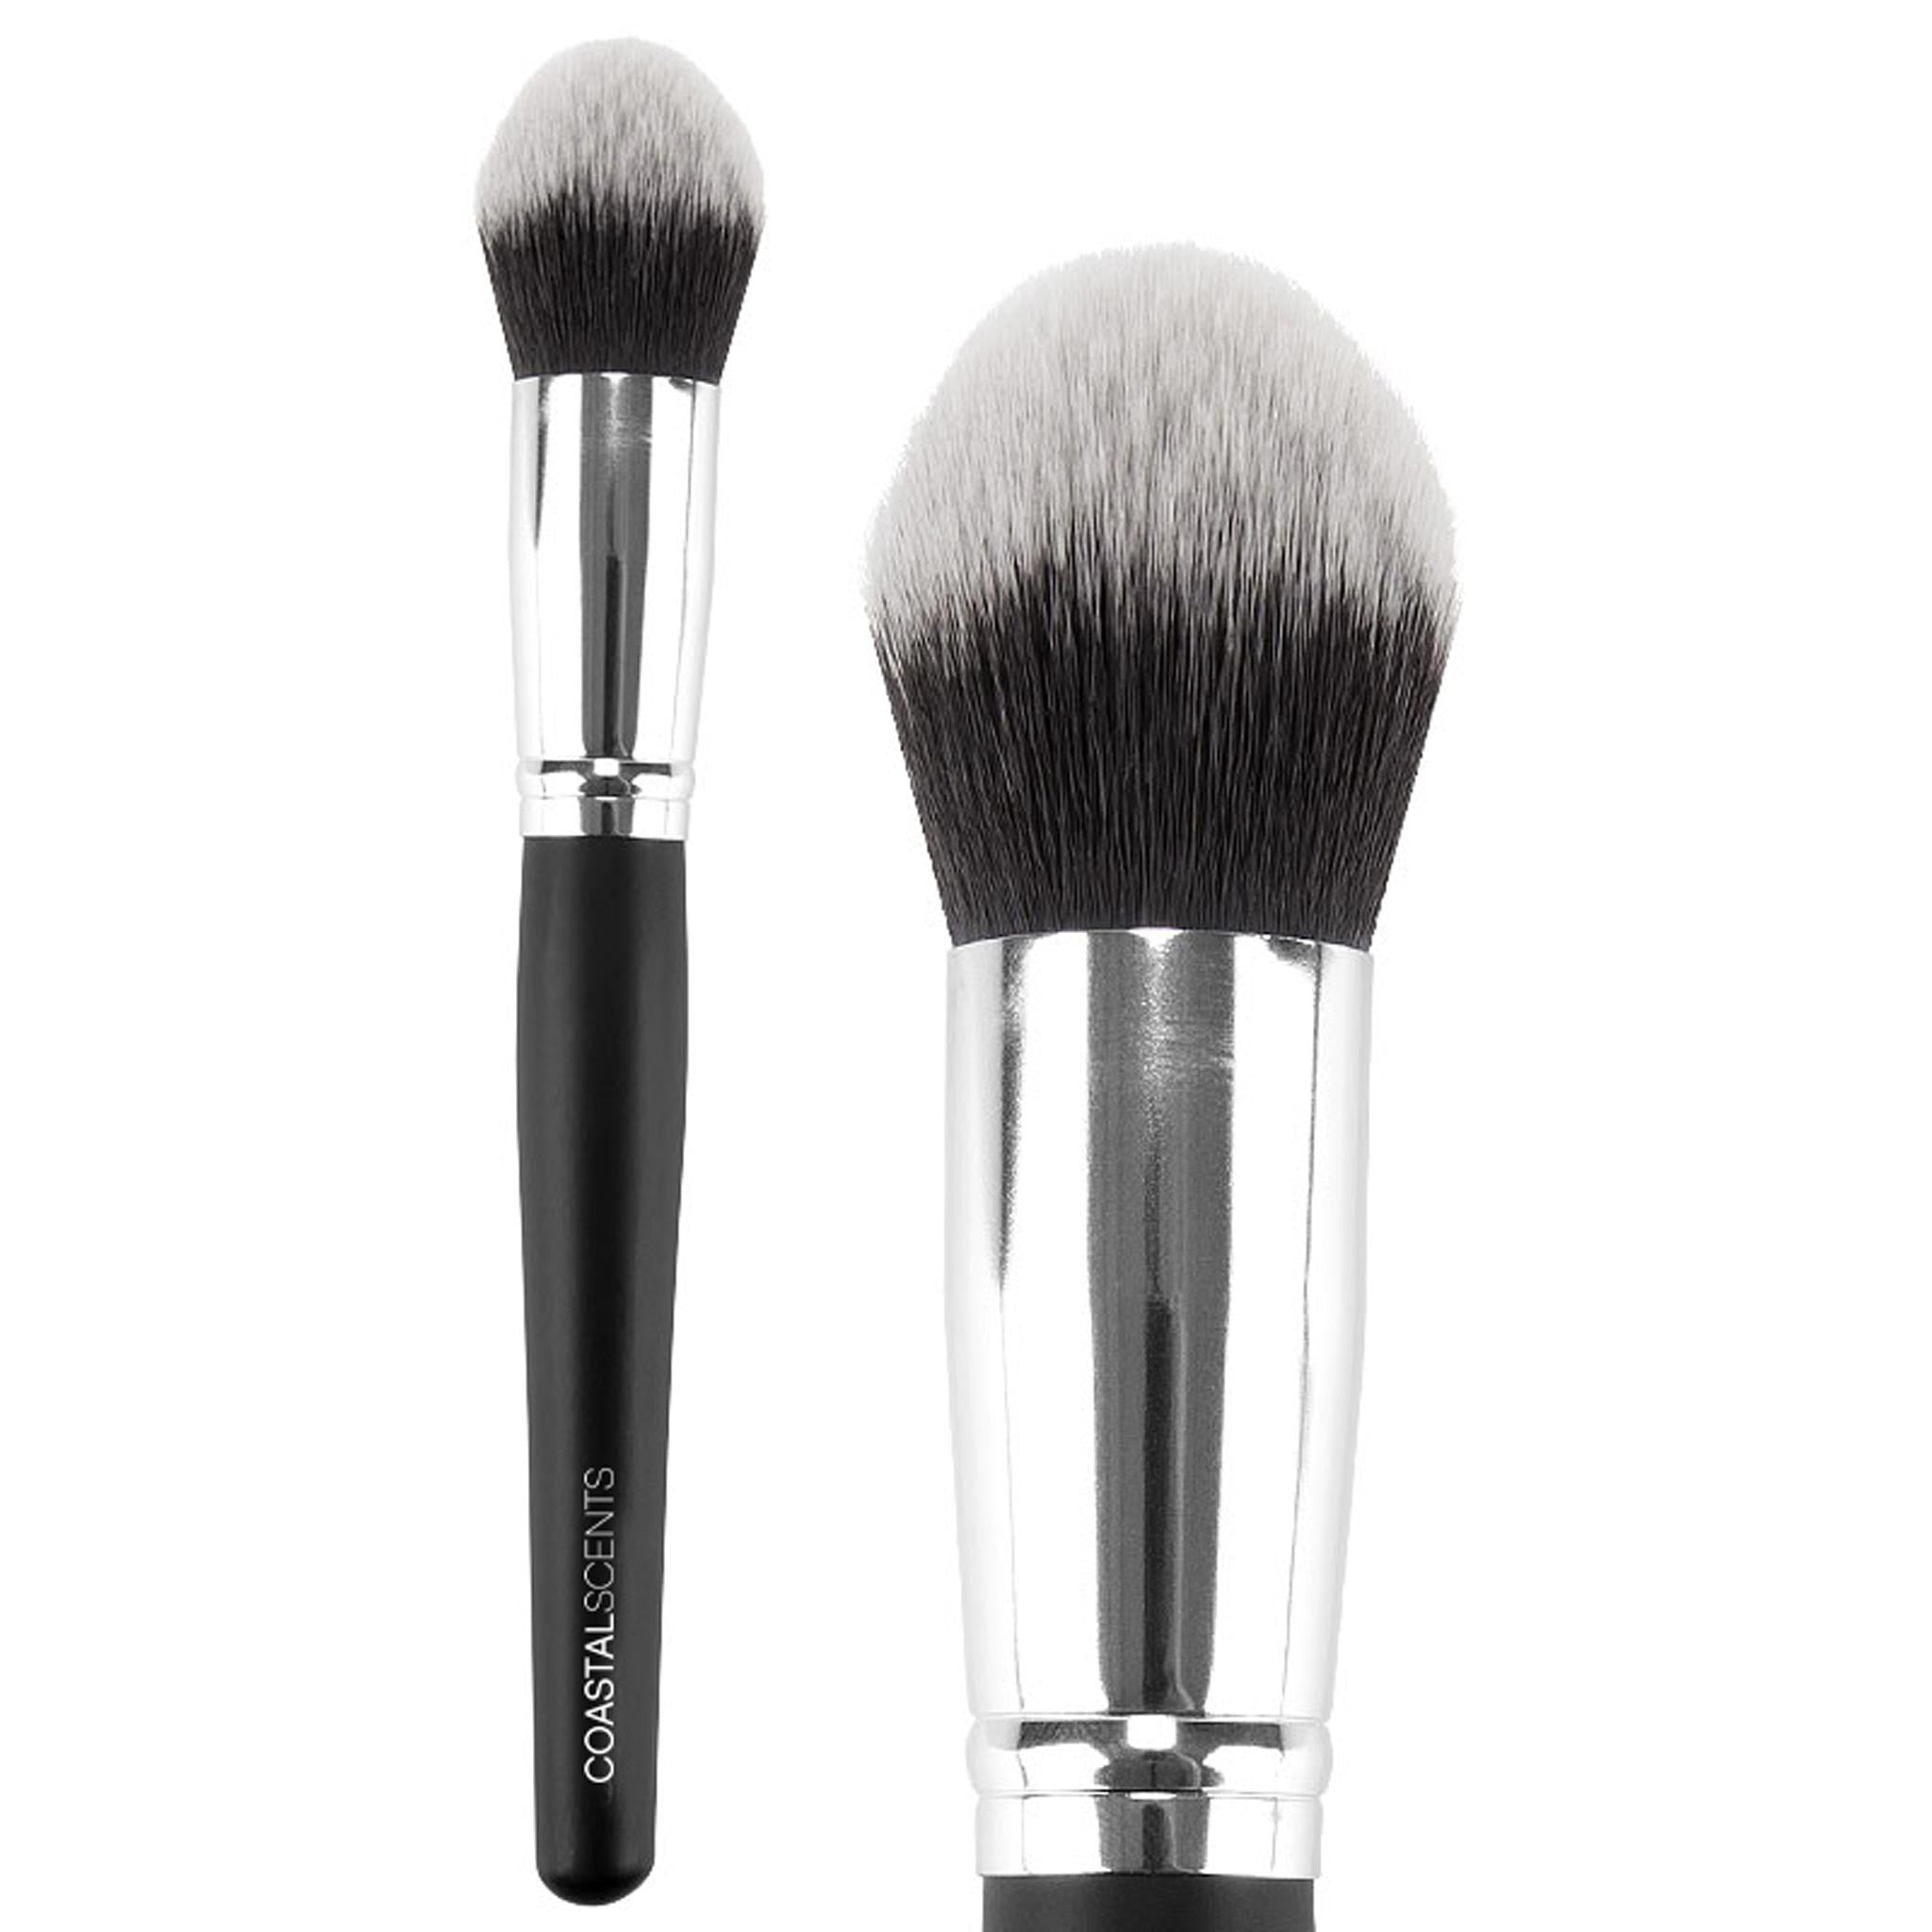 Coastal Scents coupon: Classic Medium Tapered Powder Brush Synthetic